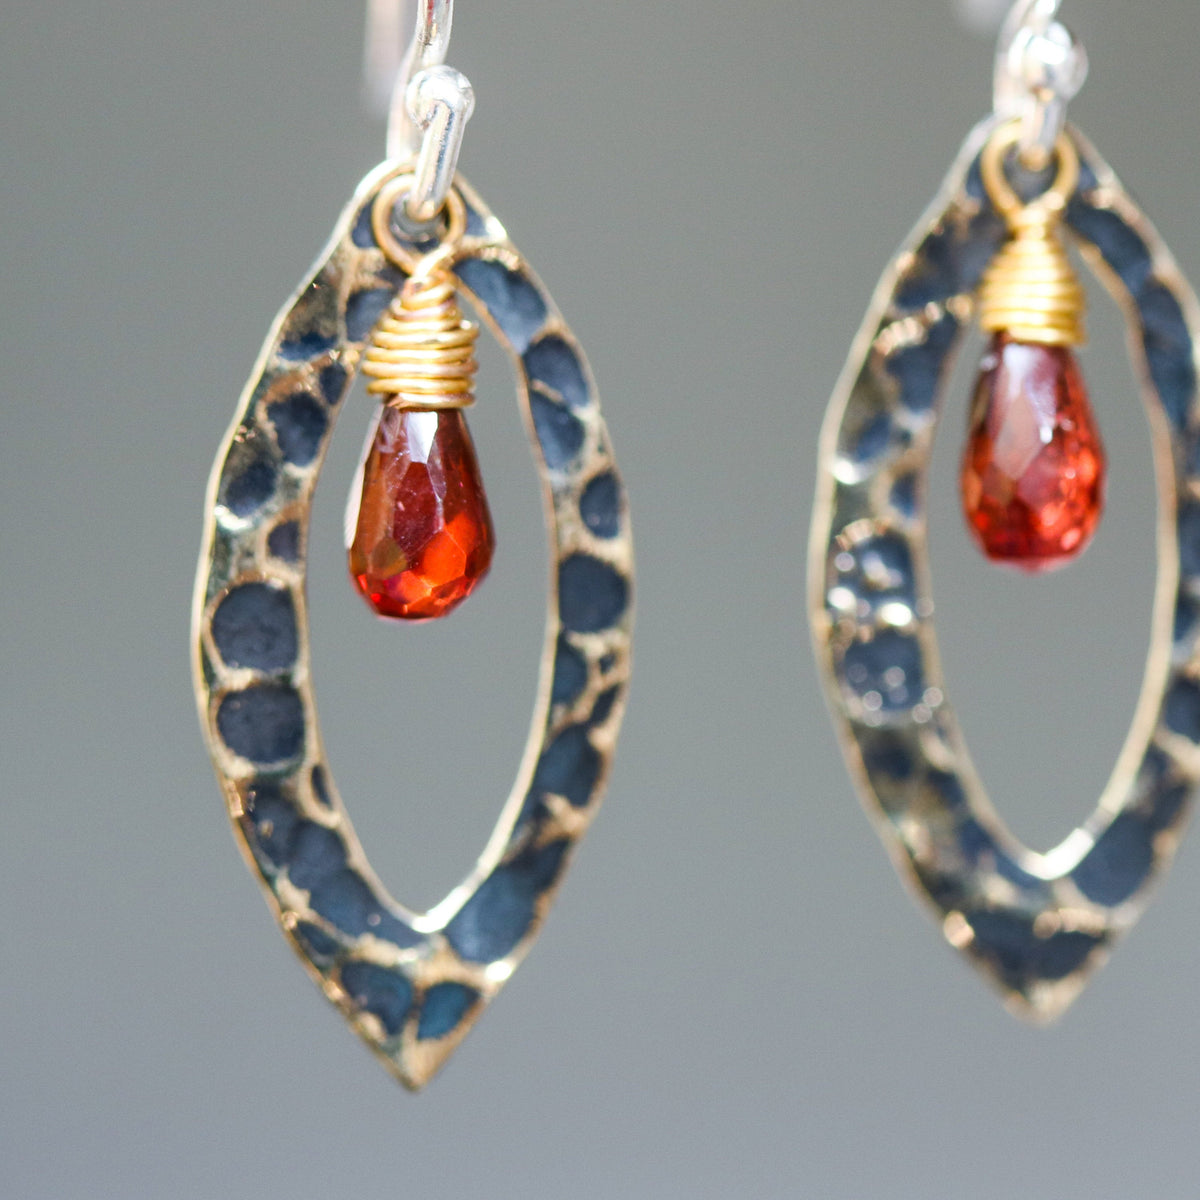 Garnet earrings and oxidized brass marquis shape in hammer textured on sterling silver hook style(FBA)